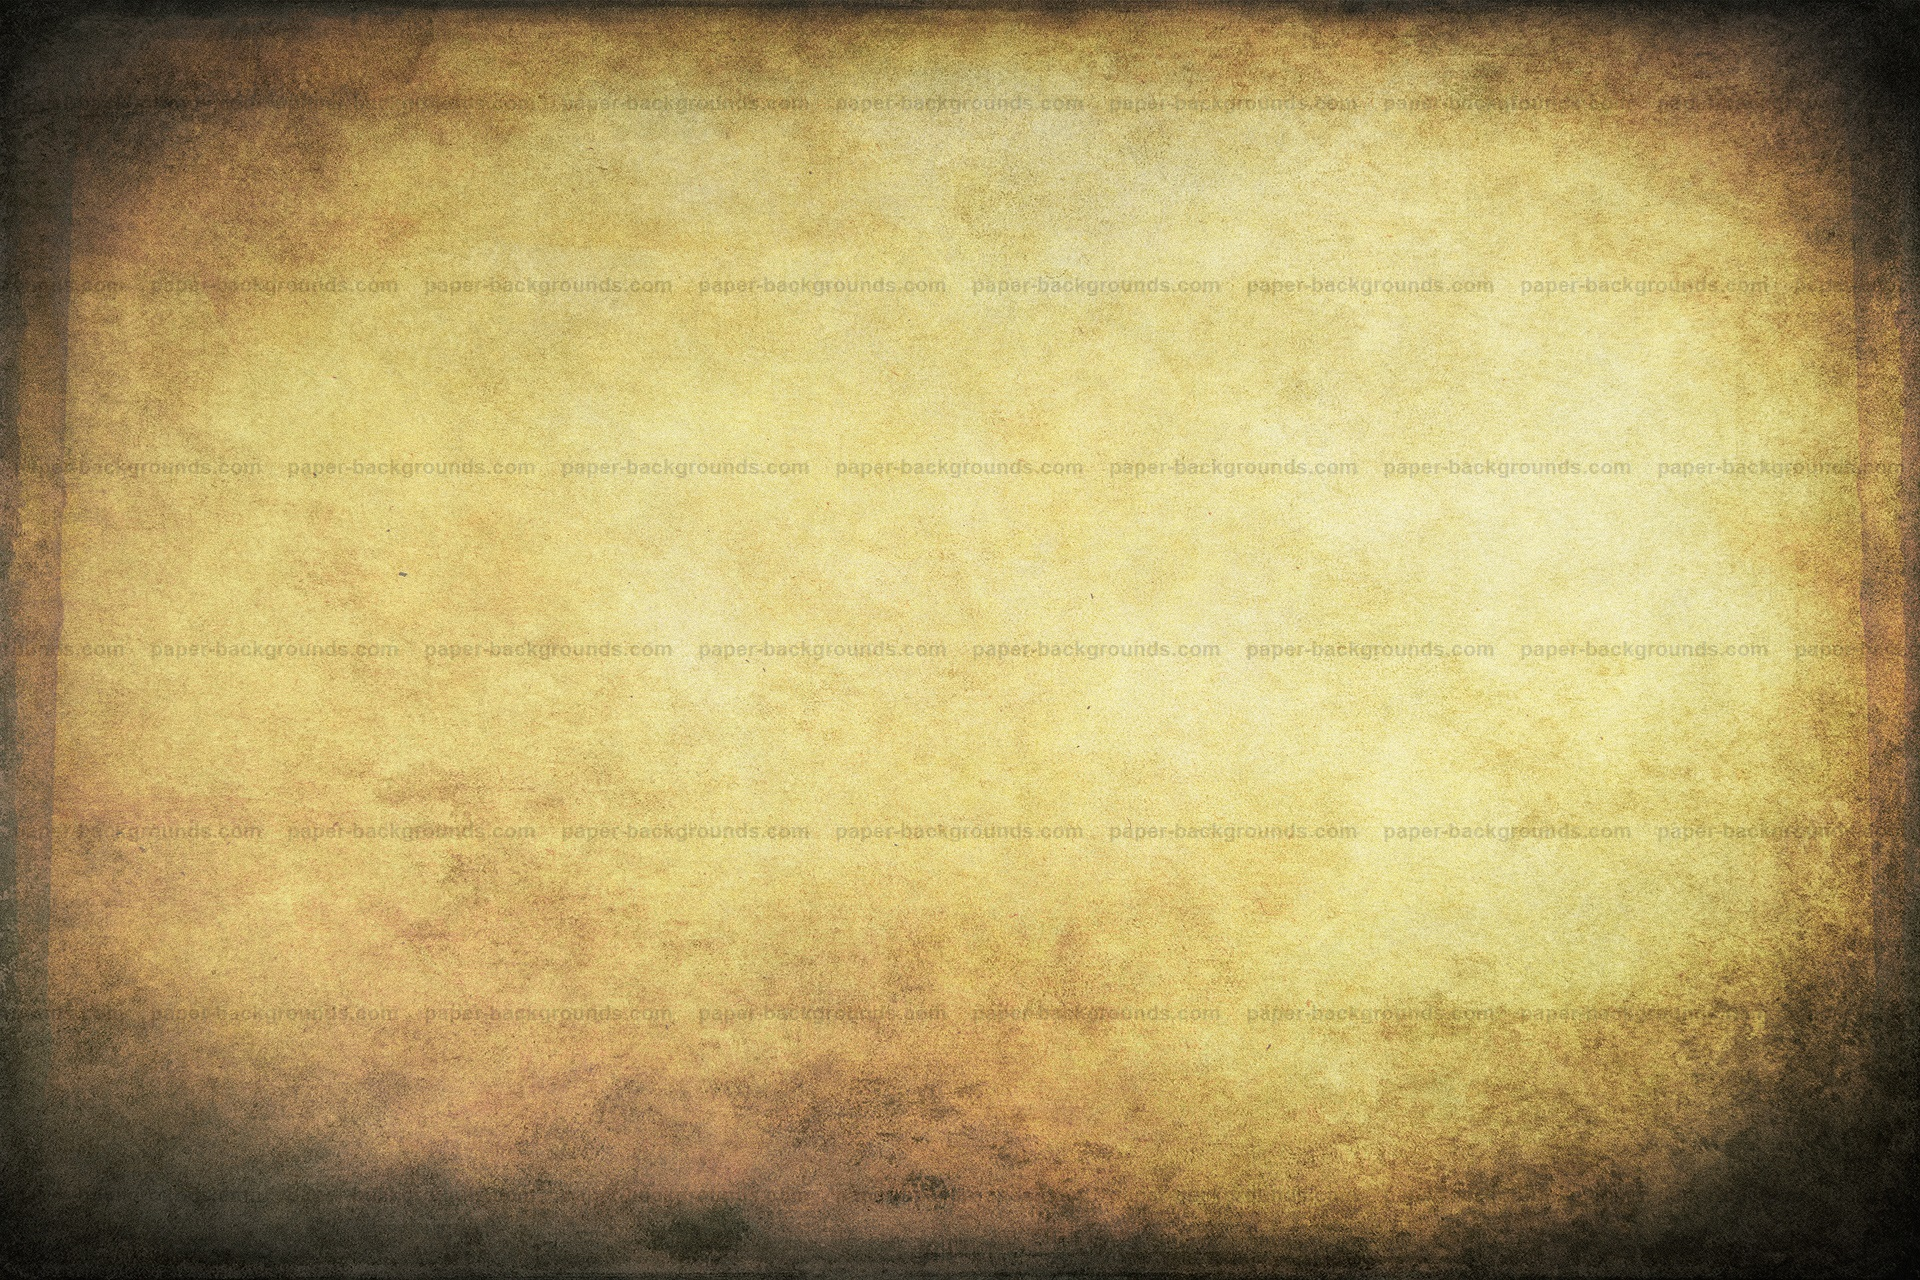 Paper Backgrounds grunge yellow paper texture background hd 1920x1280